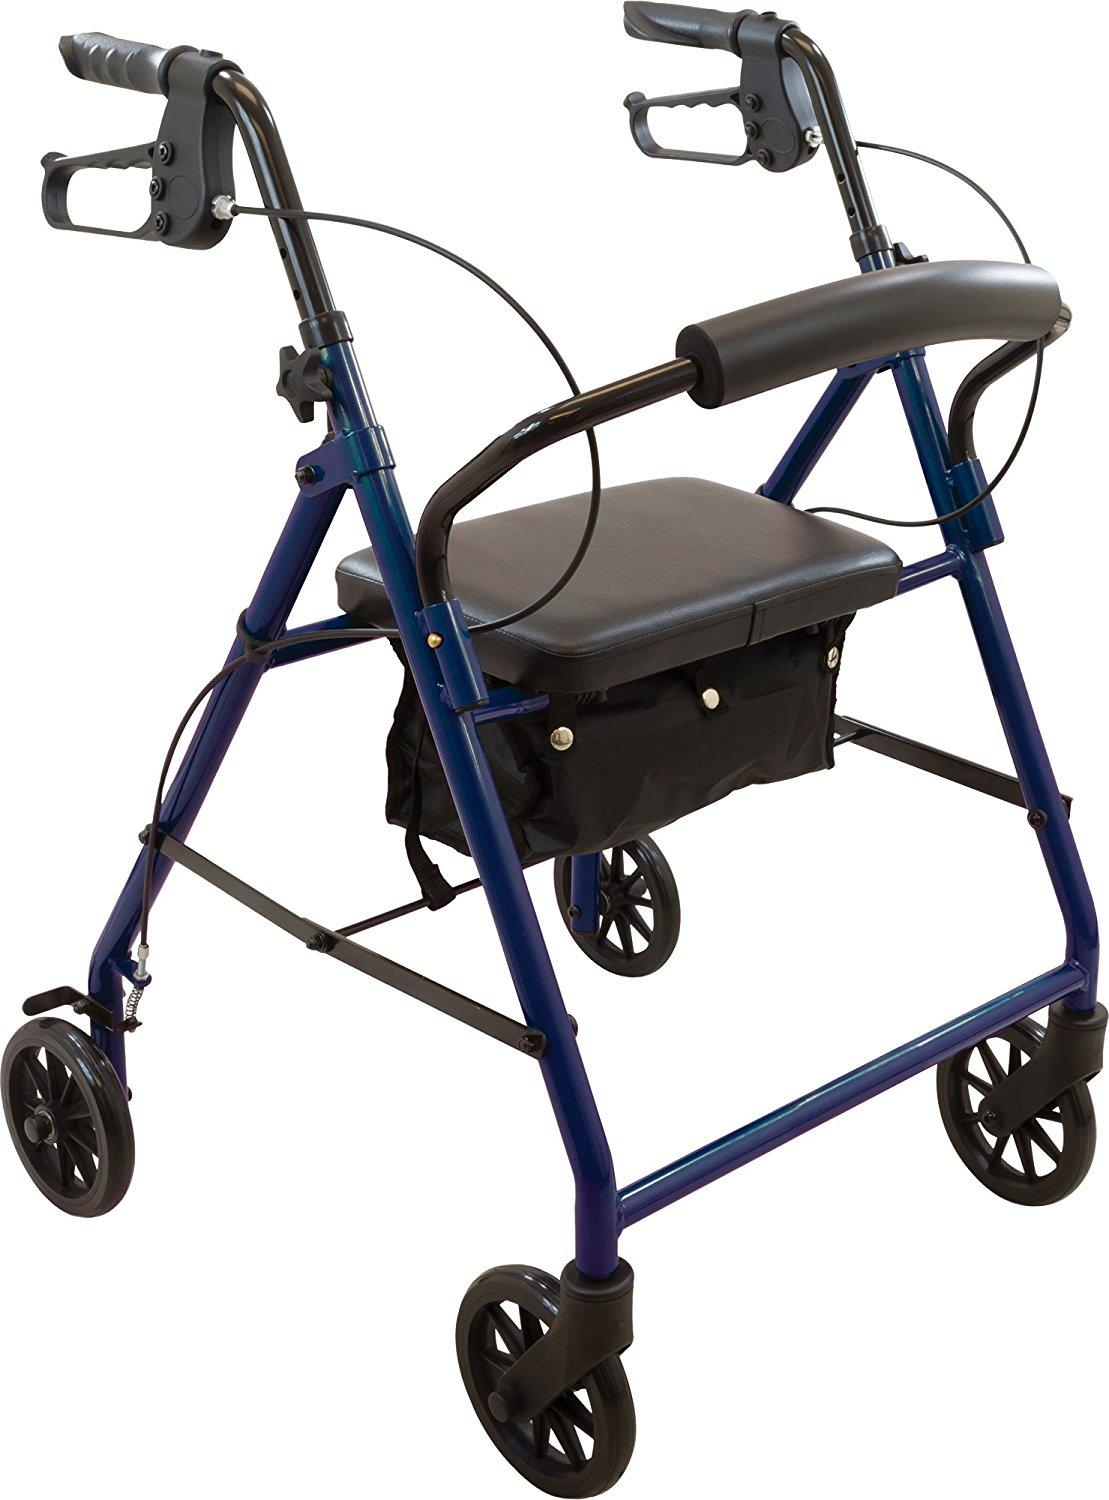 Roscoe Basic Steel Rollator with Padded Seat